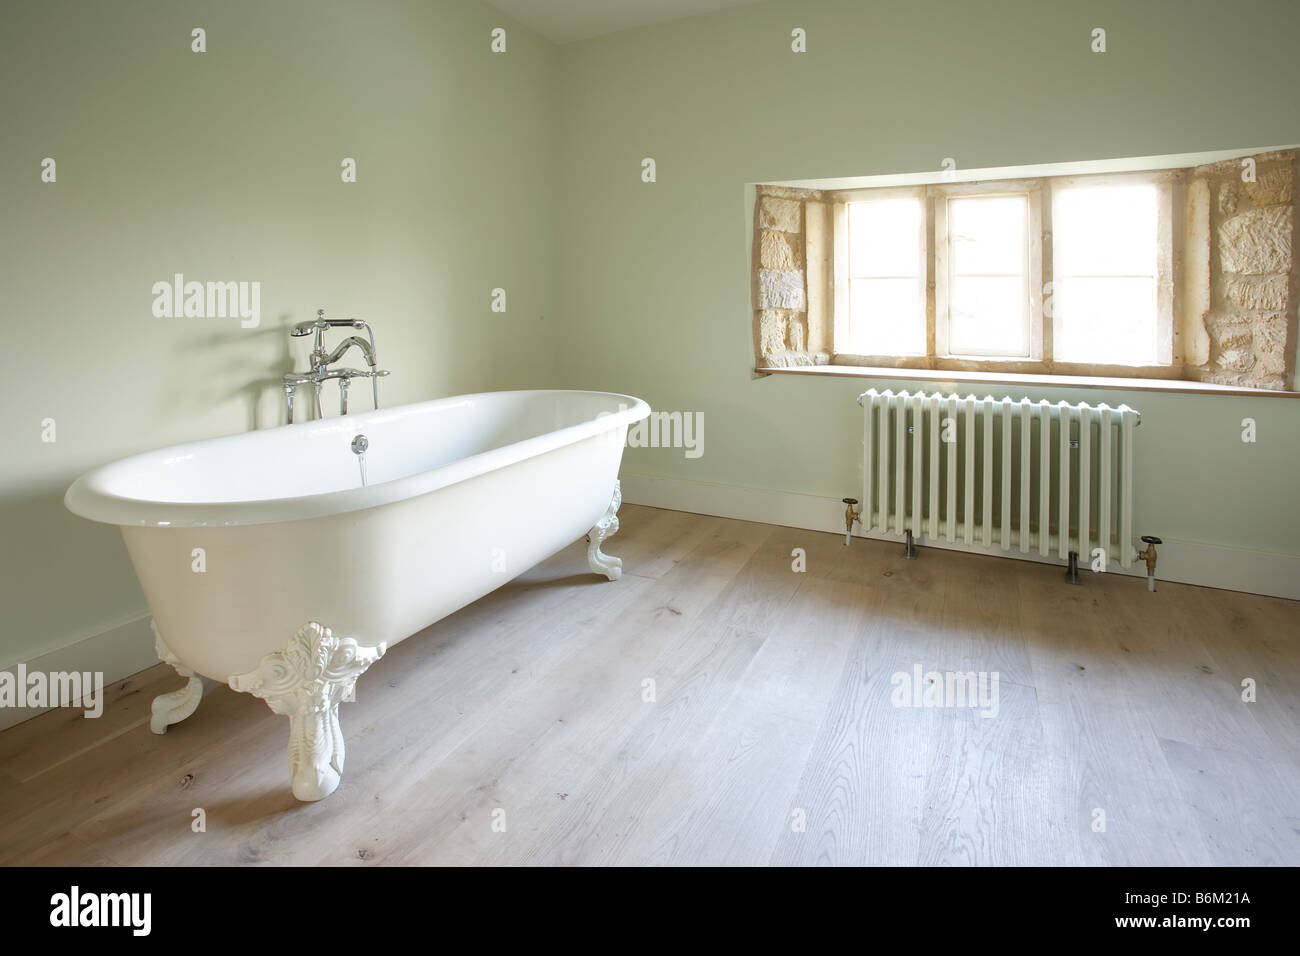 Victorian Bath Stock Photos & Victorian Bath Stock Images - Alamy